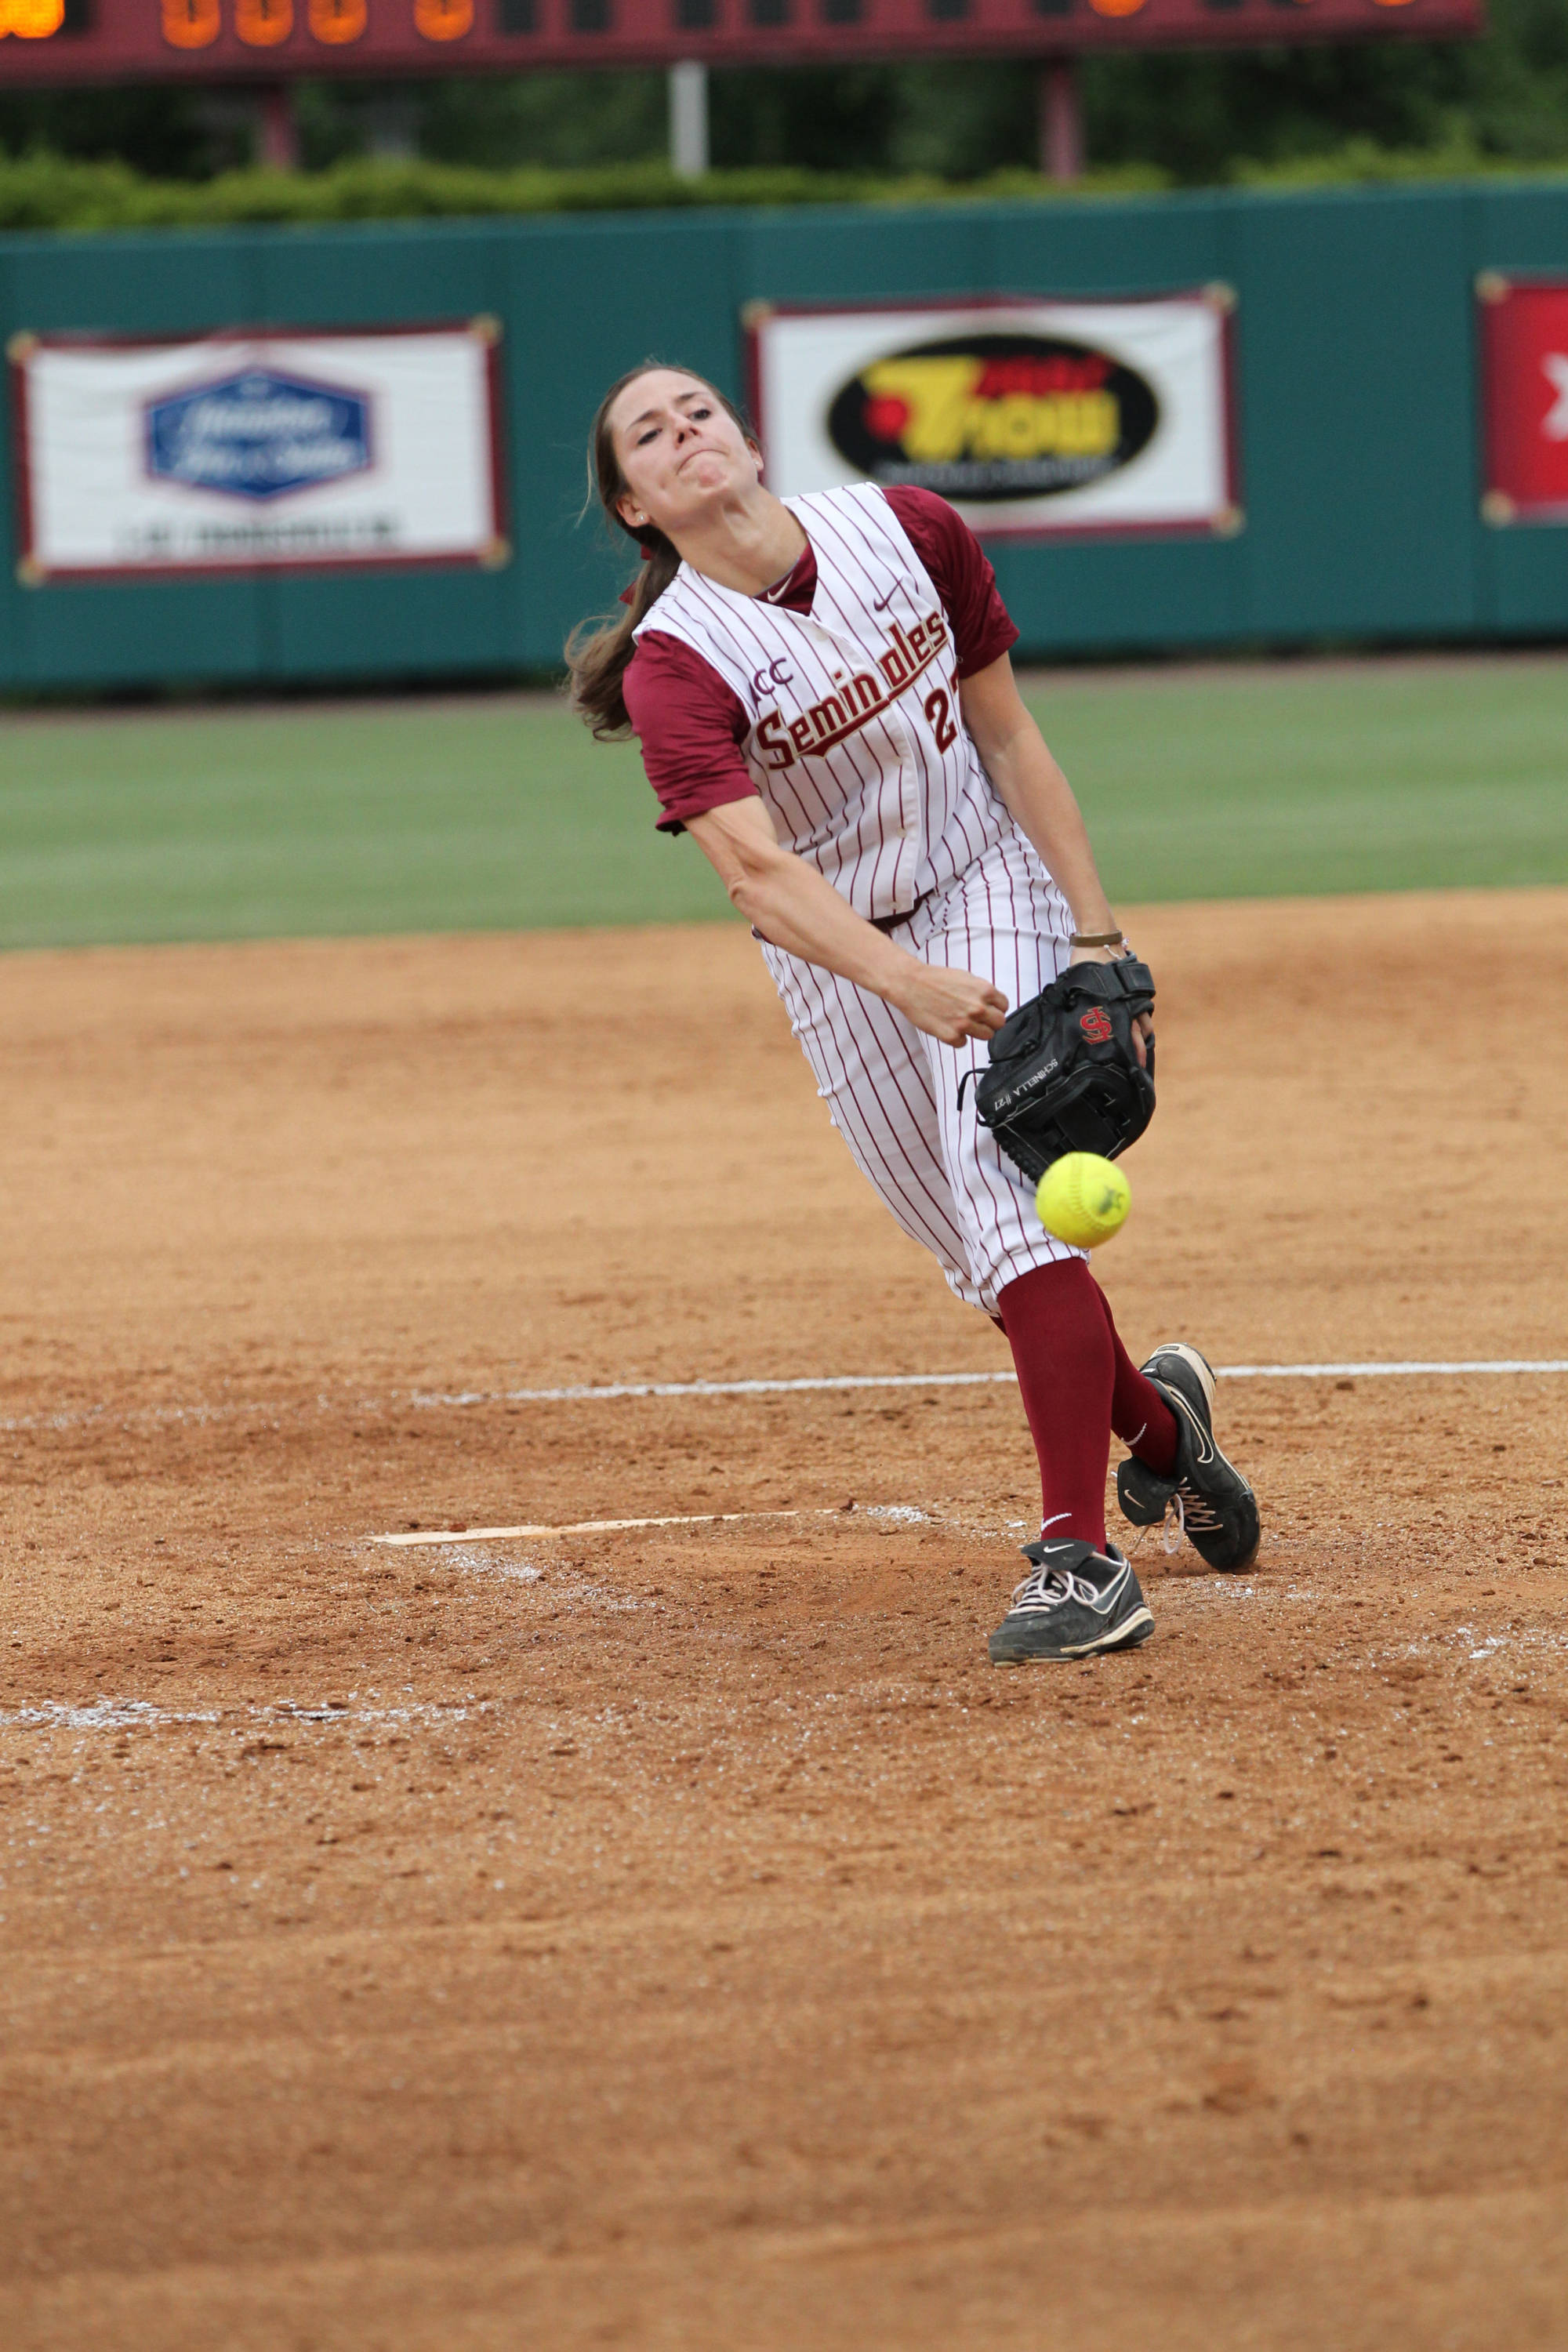 Bailey Shinella, FSU vs FLA, 04/17/13 . (Photo by Steve Musco)